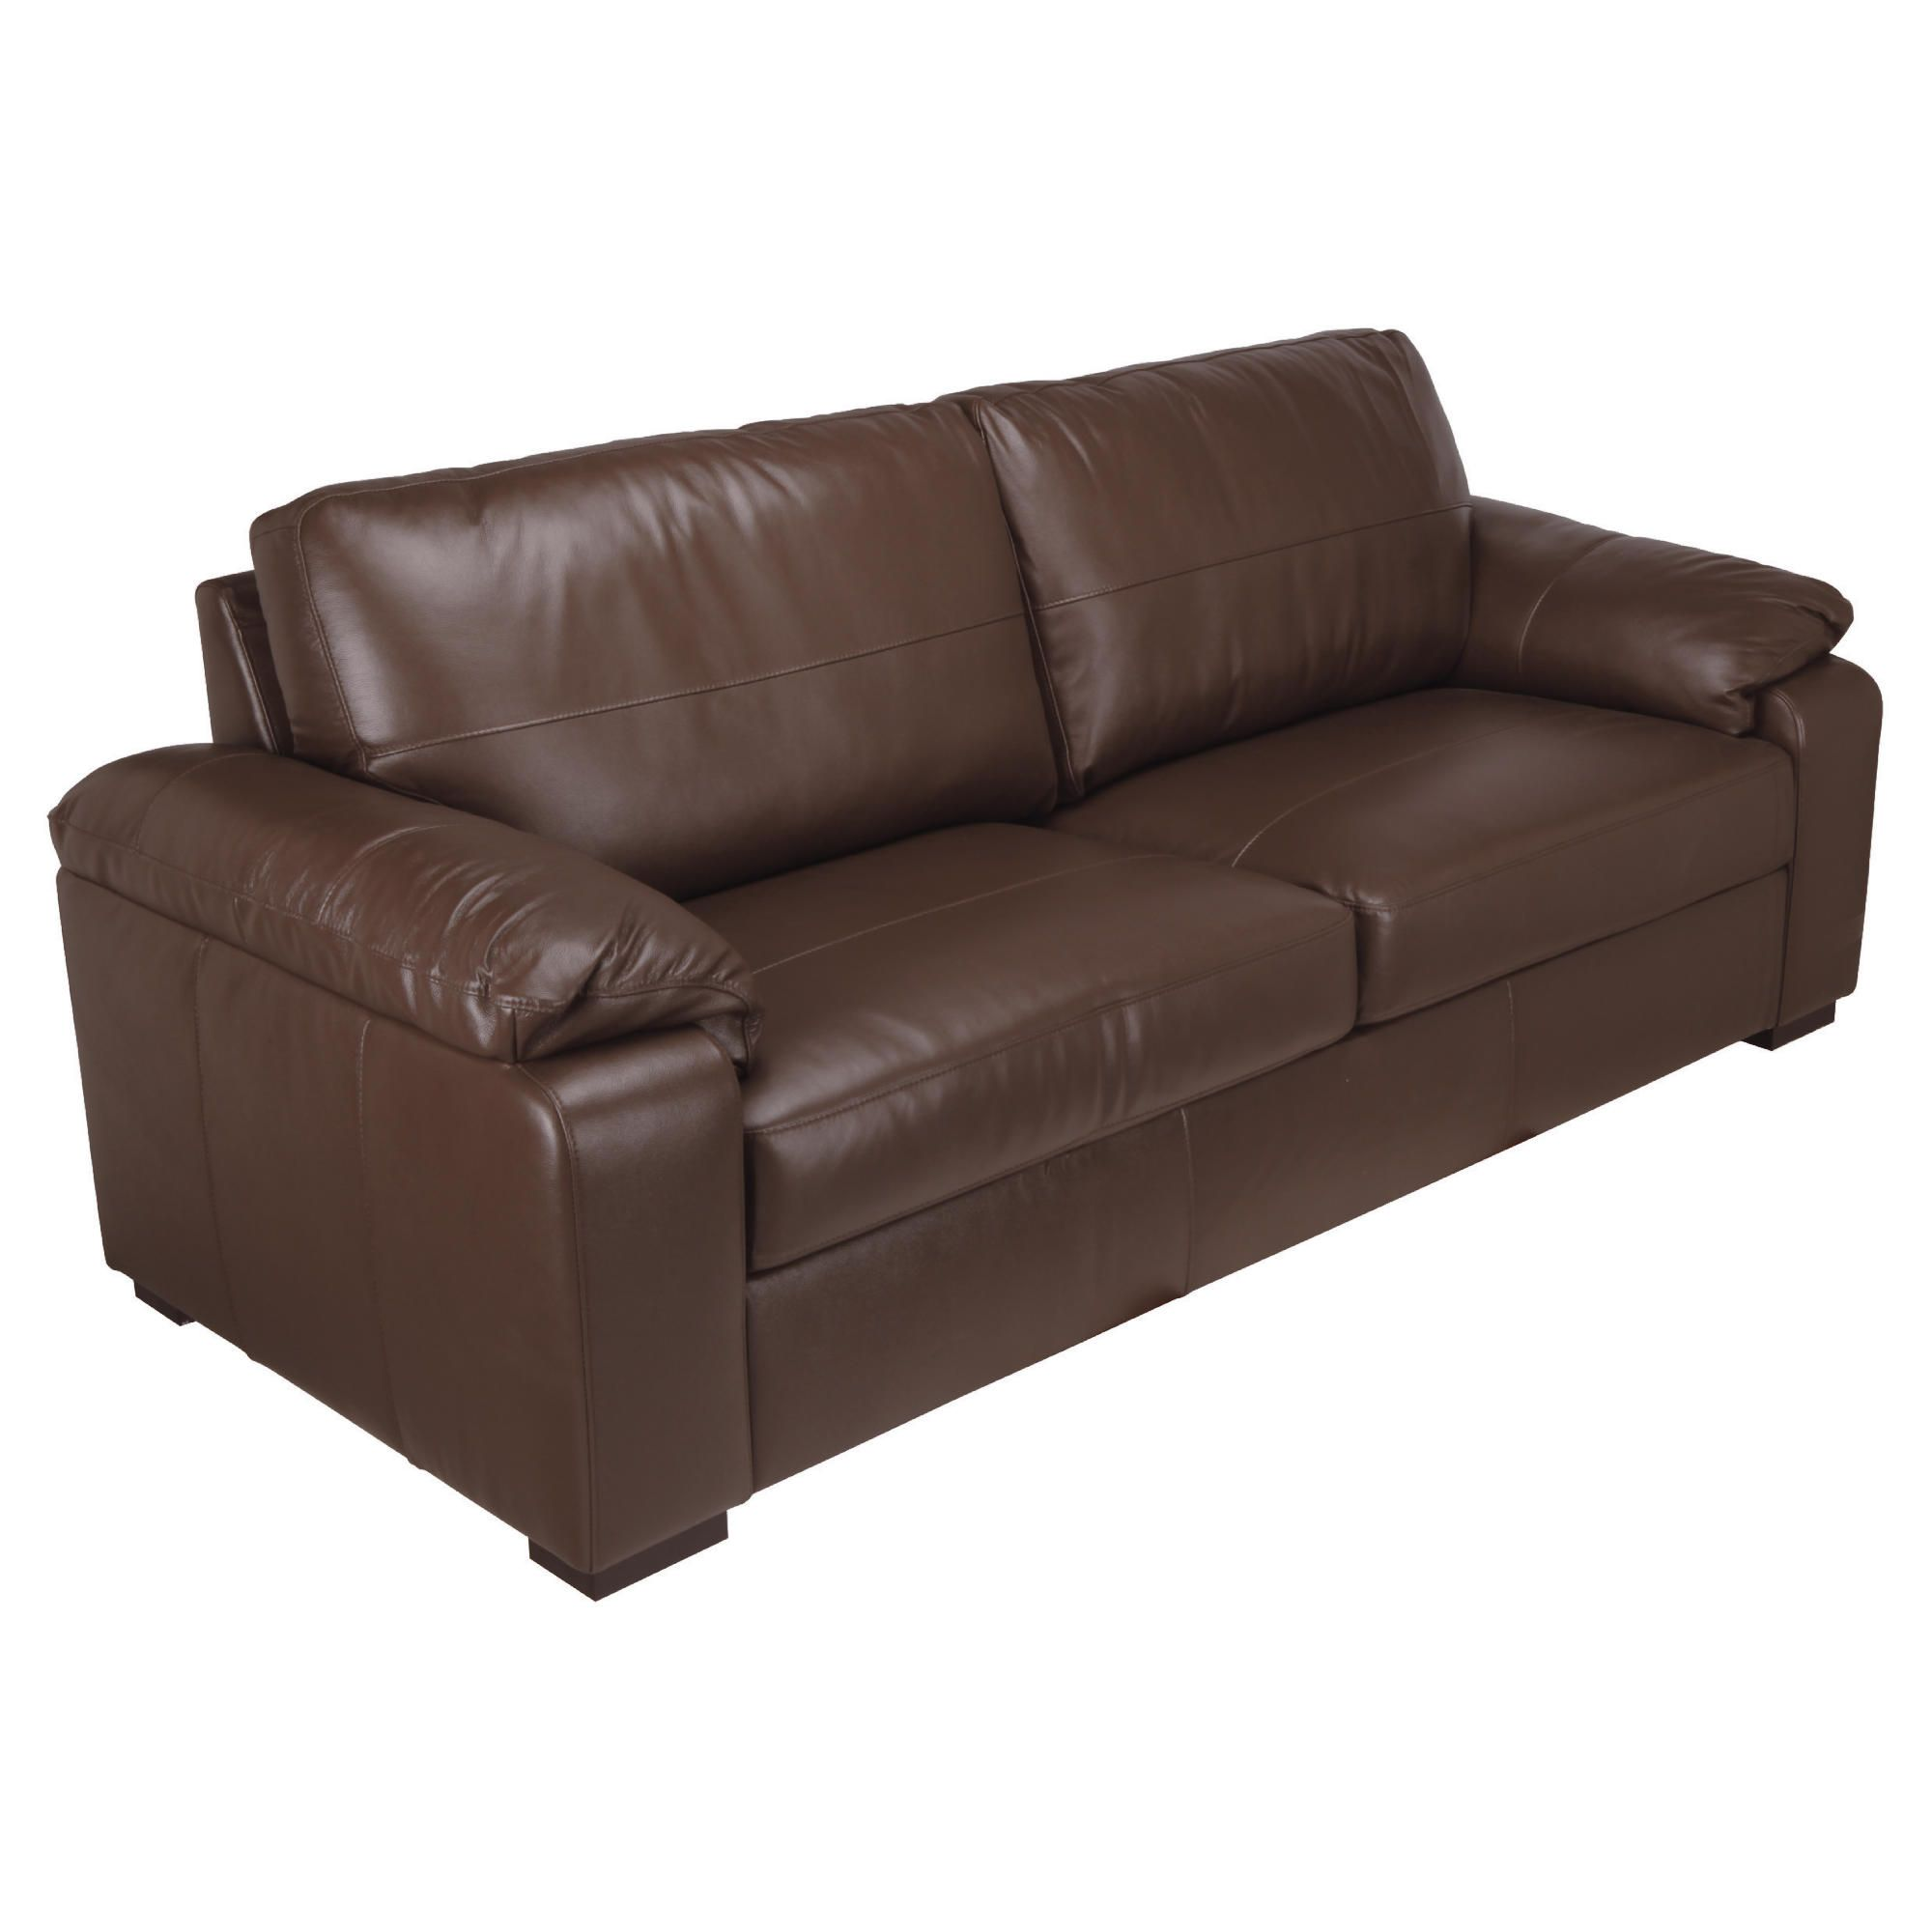 Tesco Leather Sofa Wipes Refil Sofa : 211 8736PITPS1061397wid2000amphei2000 from forexrefiller.com size 2000 x 2000 jpeg 104kB